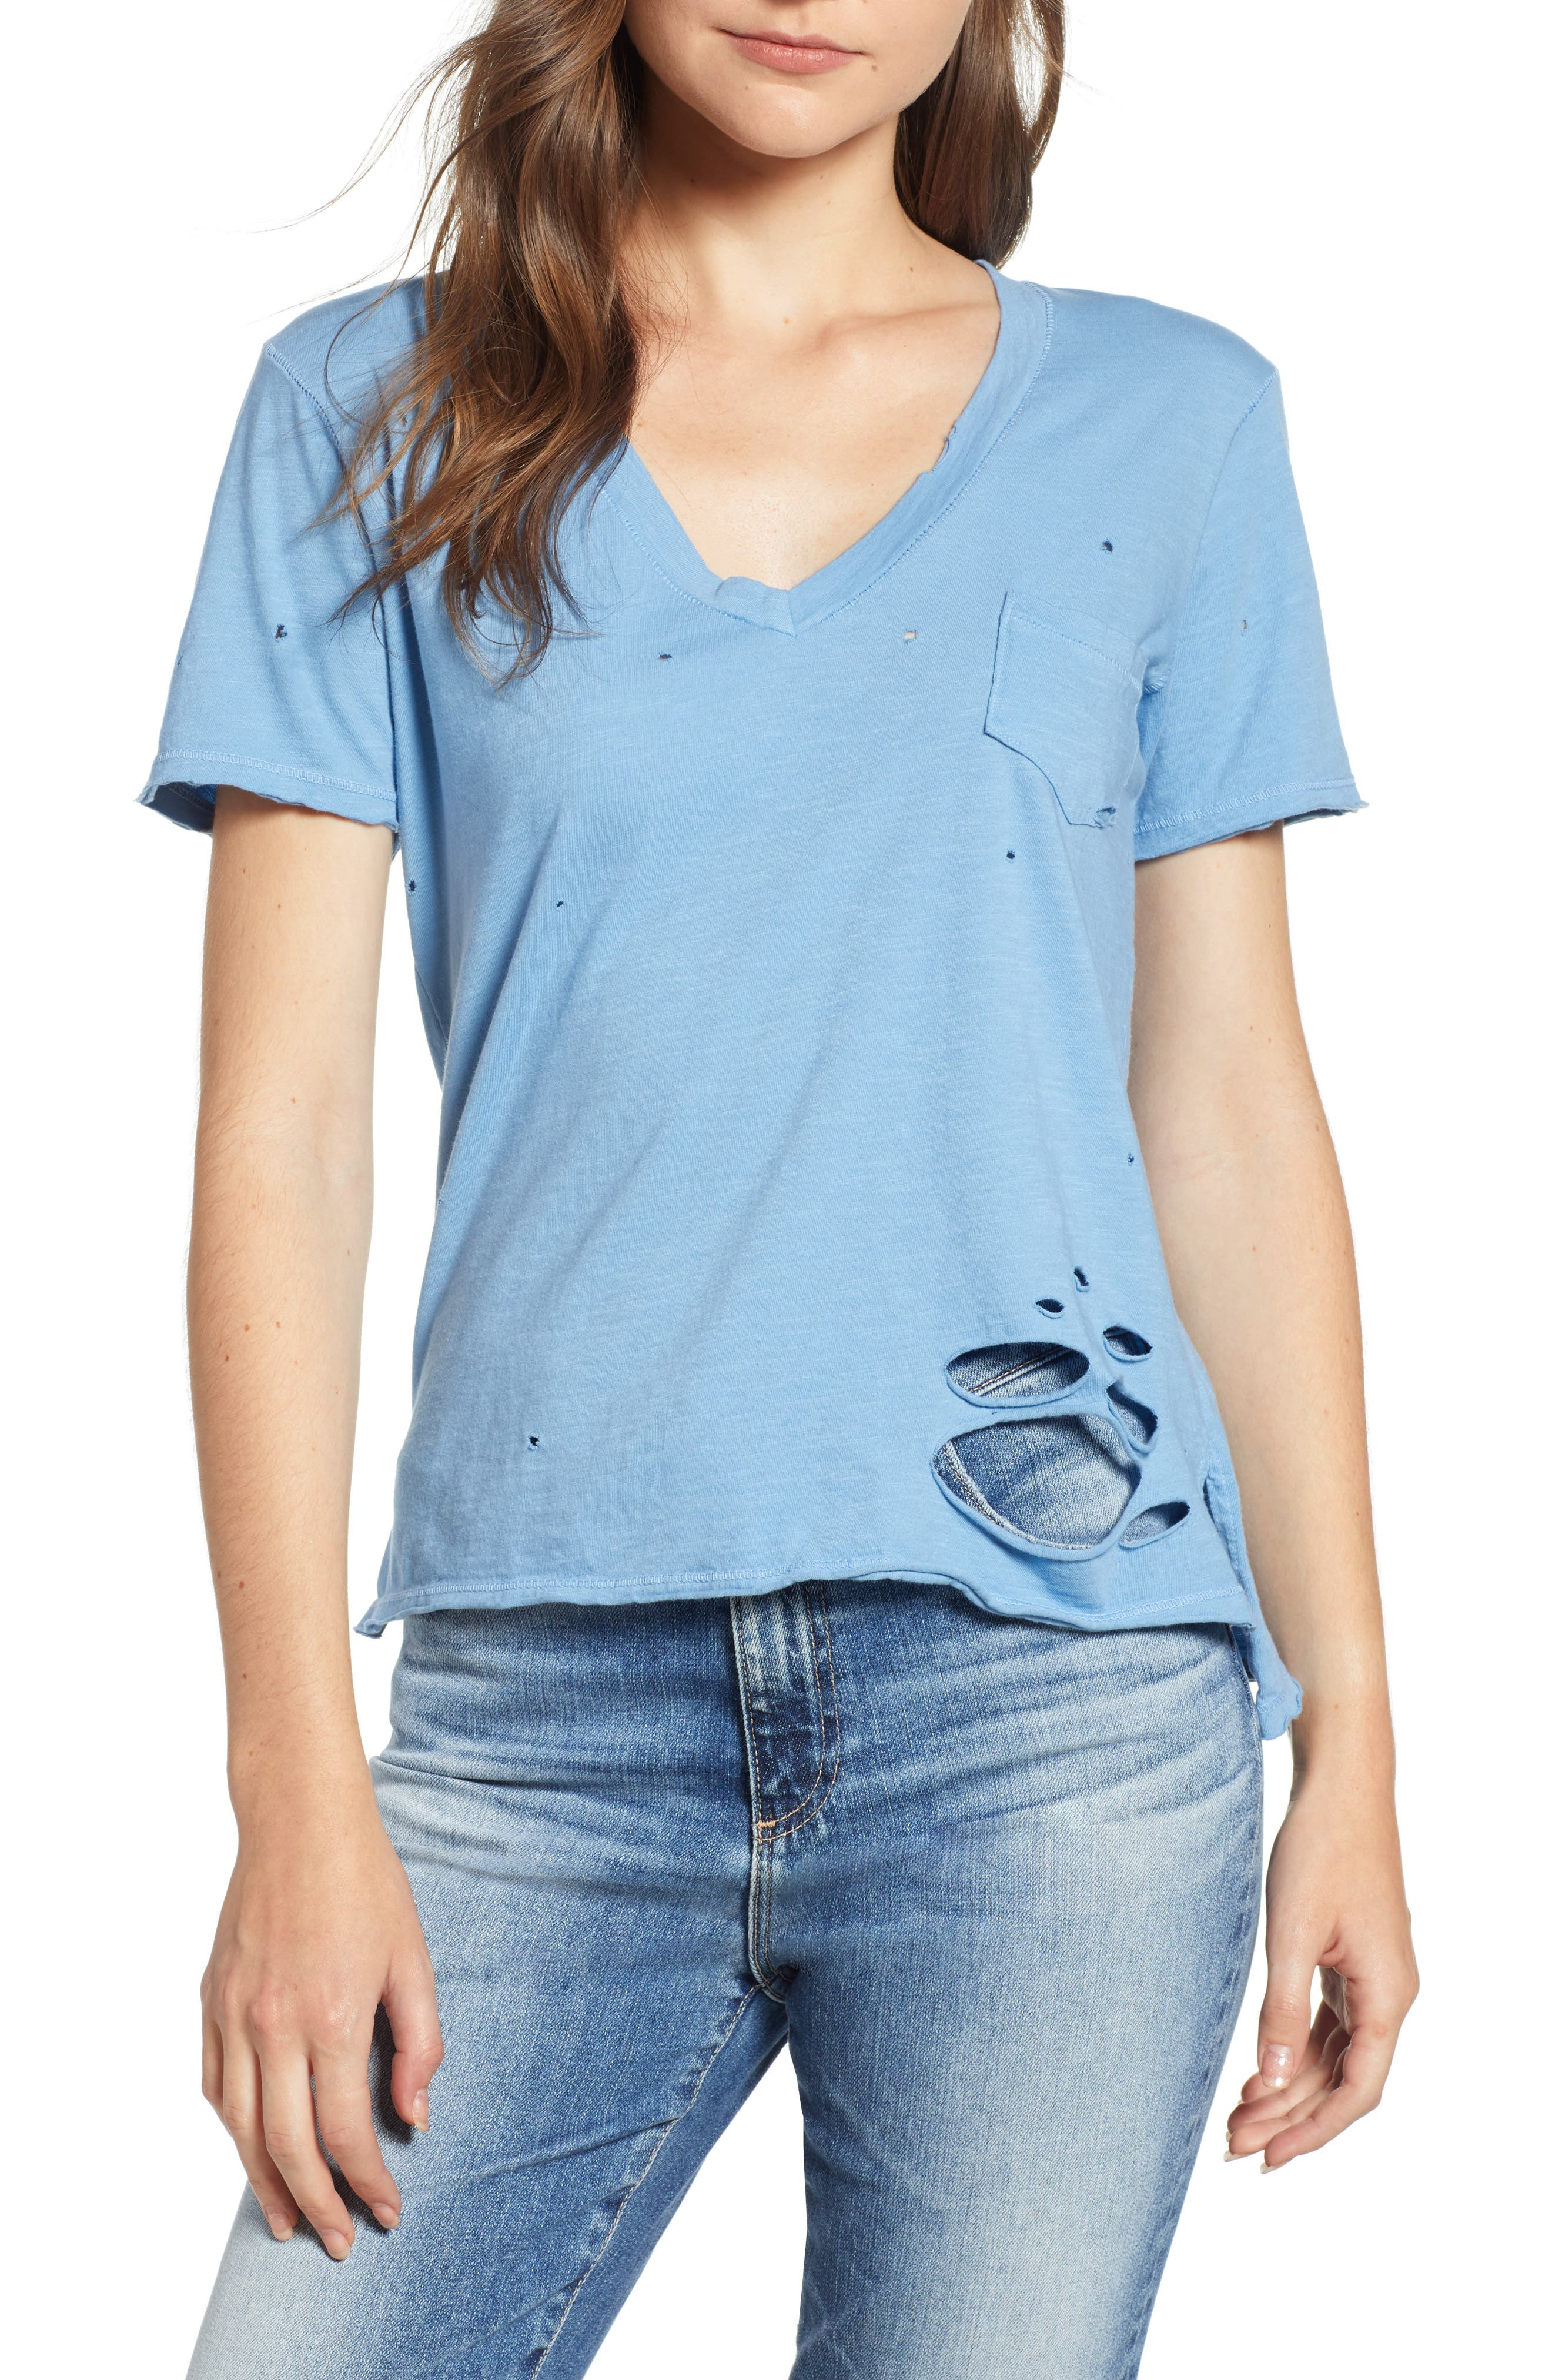 PRINCE PETER DISTRESSED V-NECK TEE